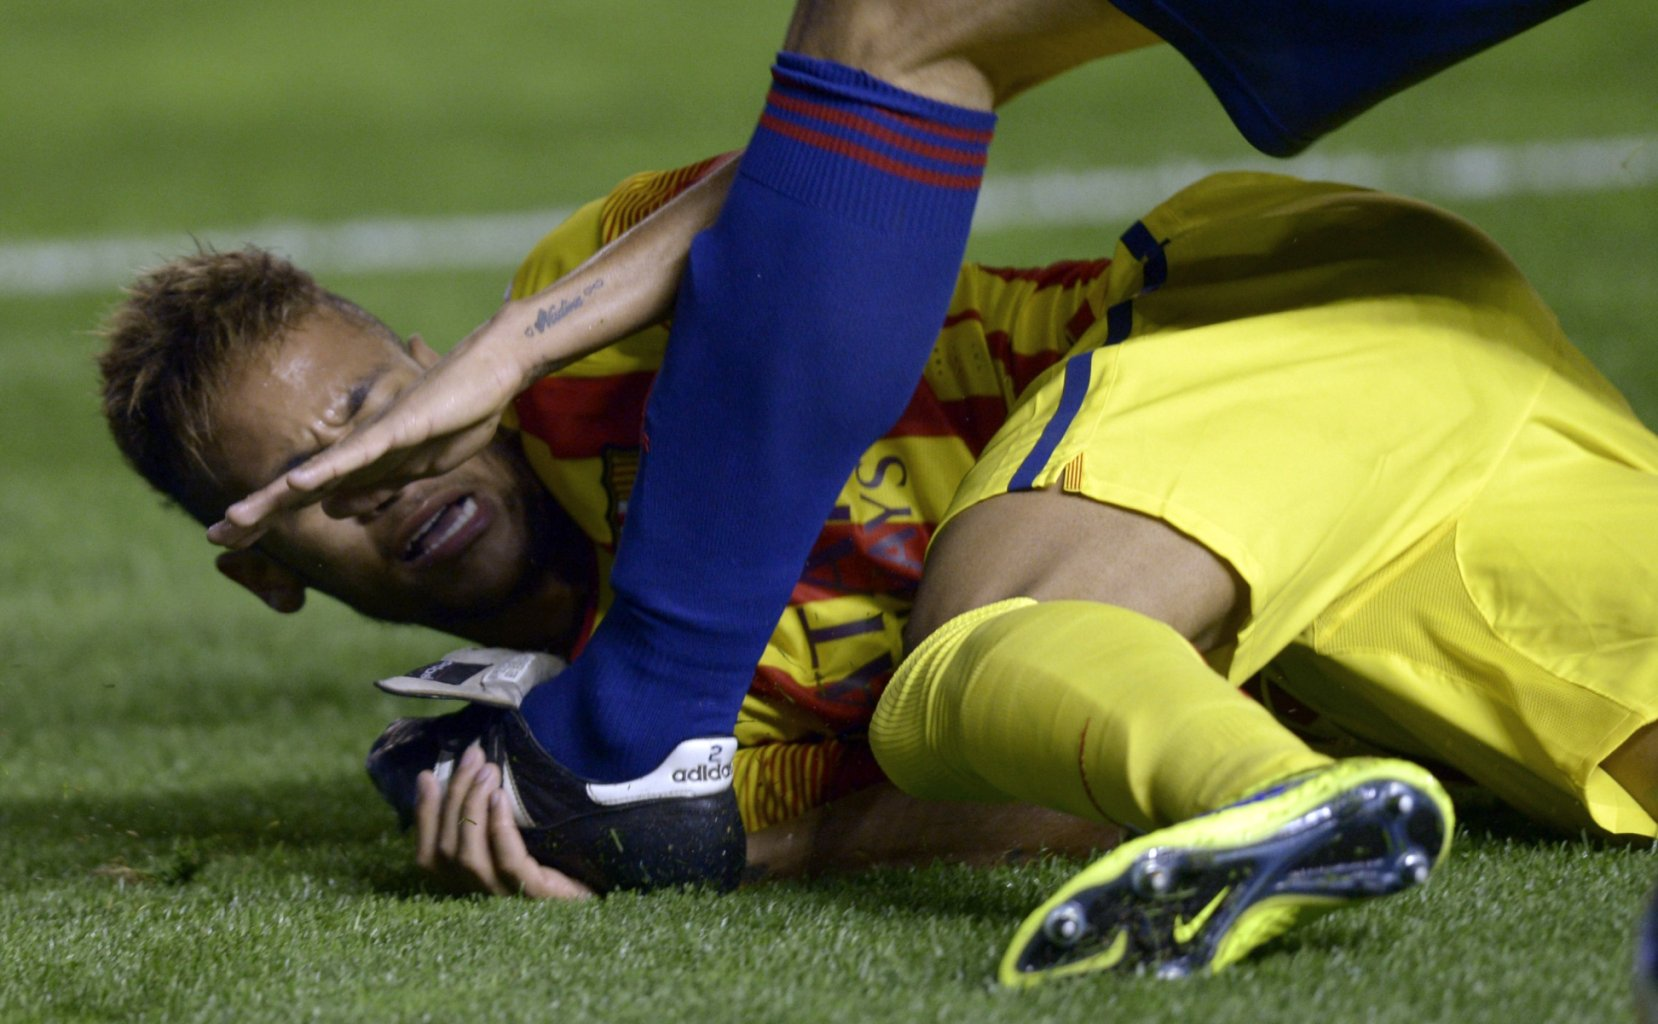 Neymar being stomped on his arm and hand against Osasuna